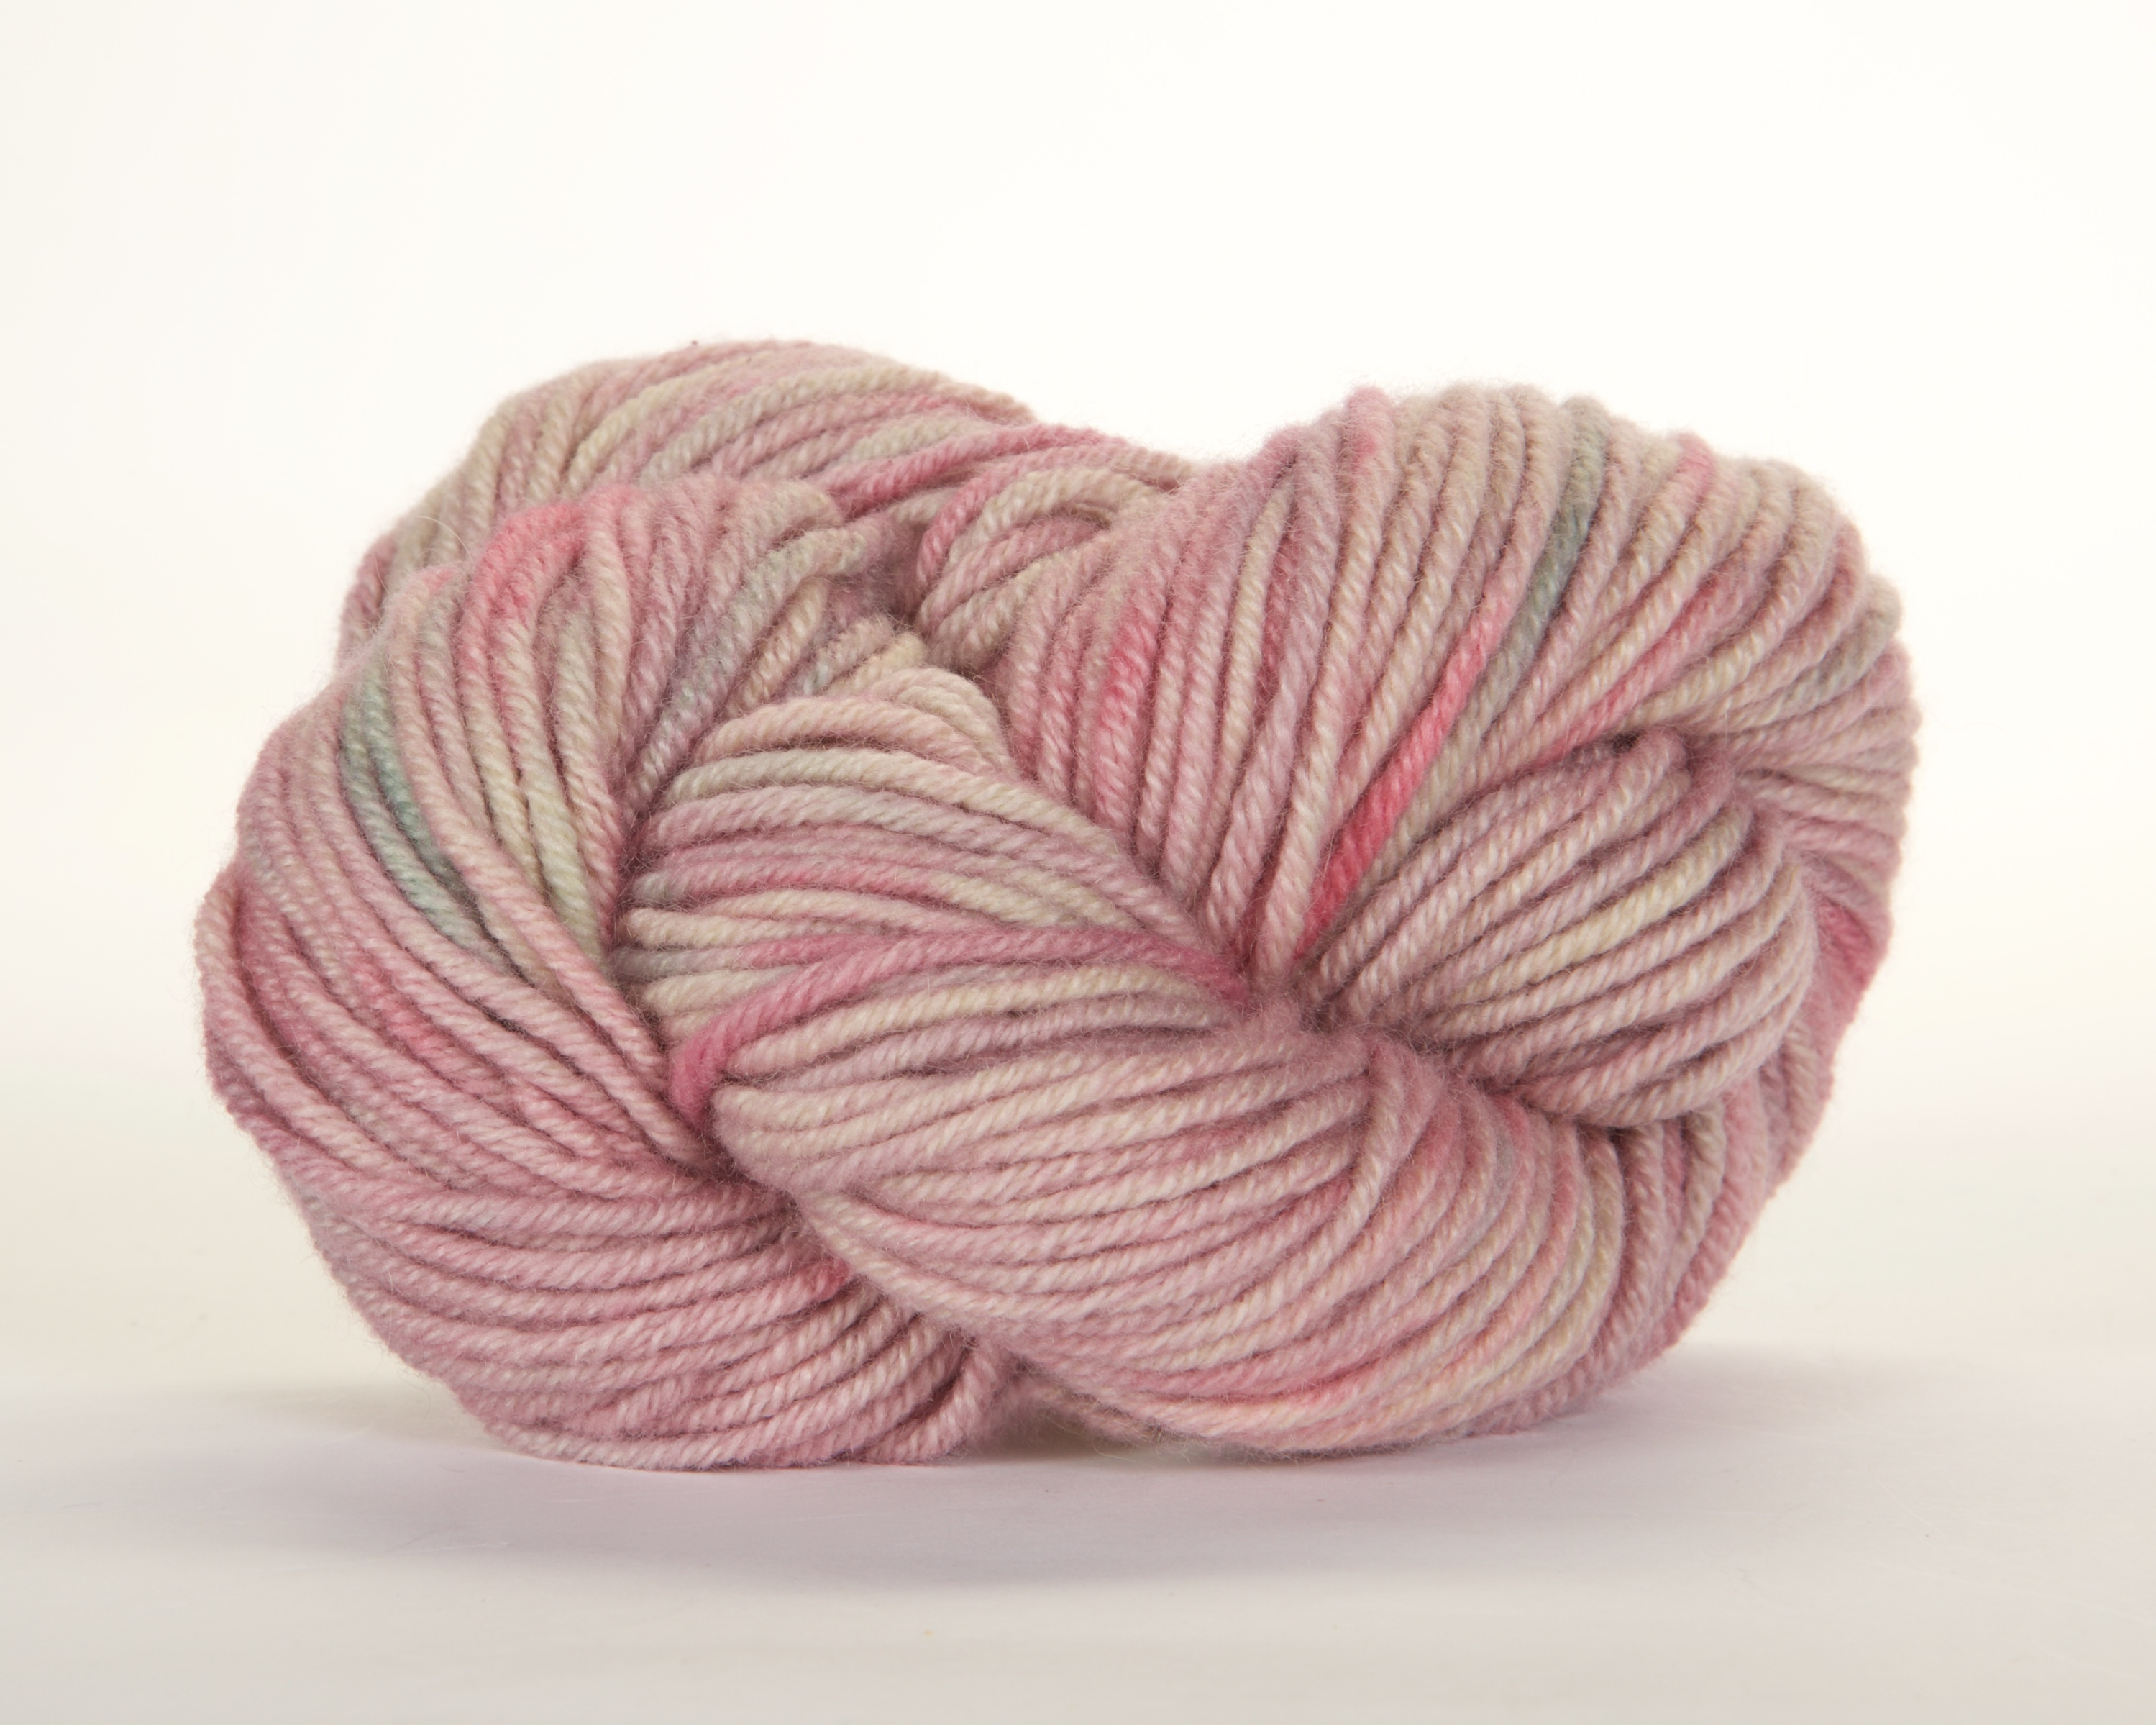 Colorways-202-Ring-around-the-rosy, Ring Around the Rosy